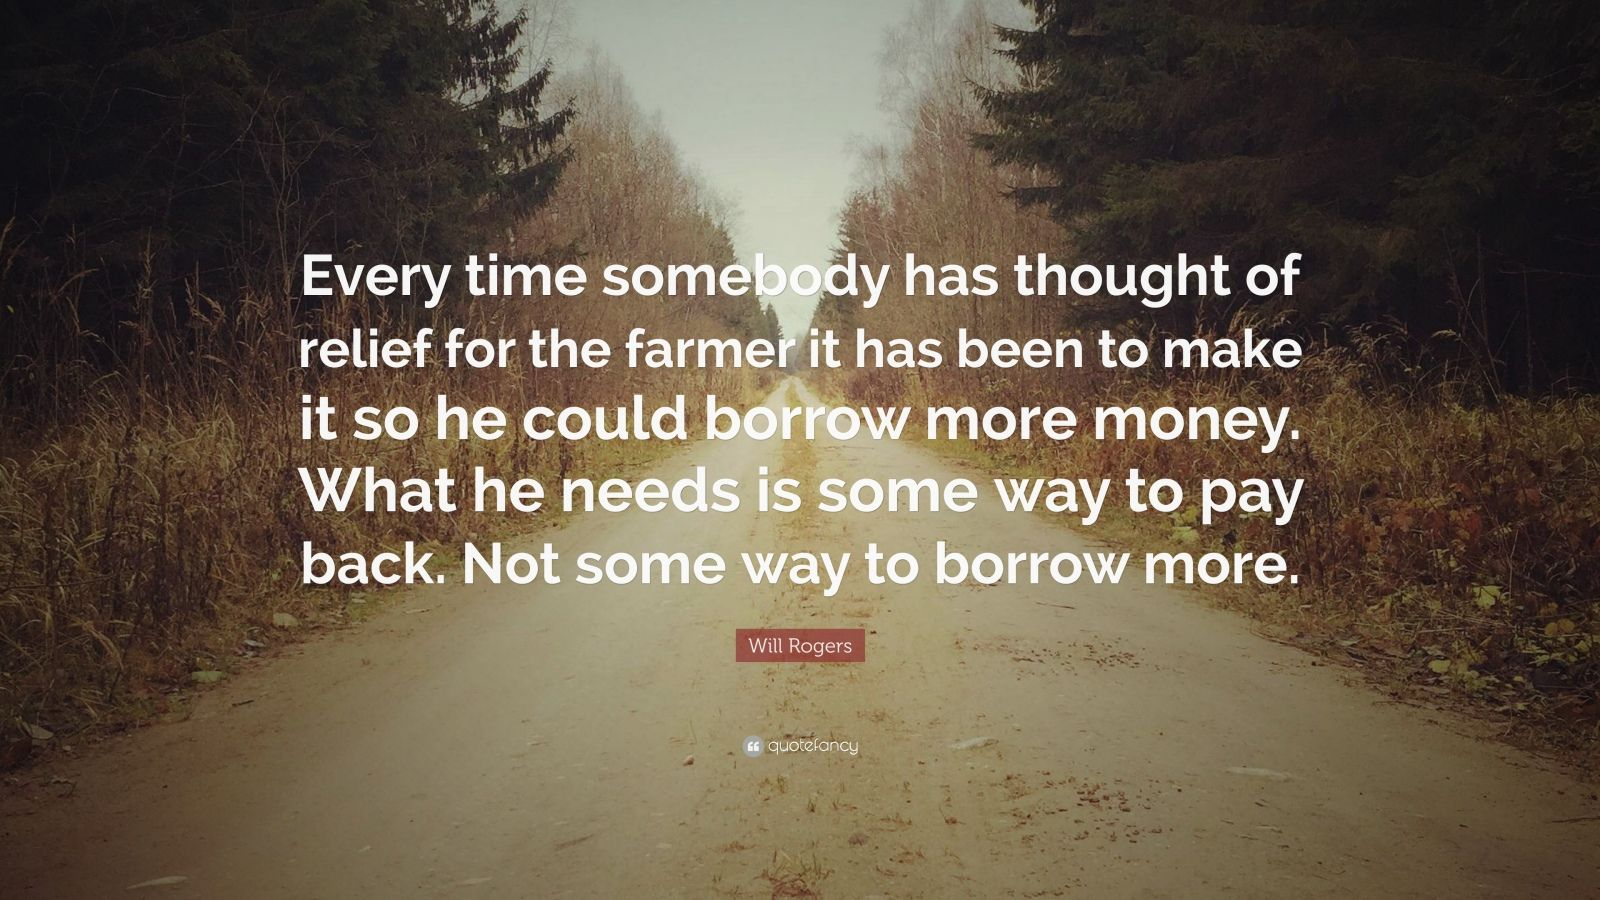 """Will Rogers Quote: """"Every time somebody has thought of relief for the farmer it has been to make it so he could borrow more money. What he needs is some way to pay back. Not some way to borrow more."""""""